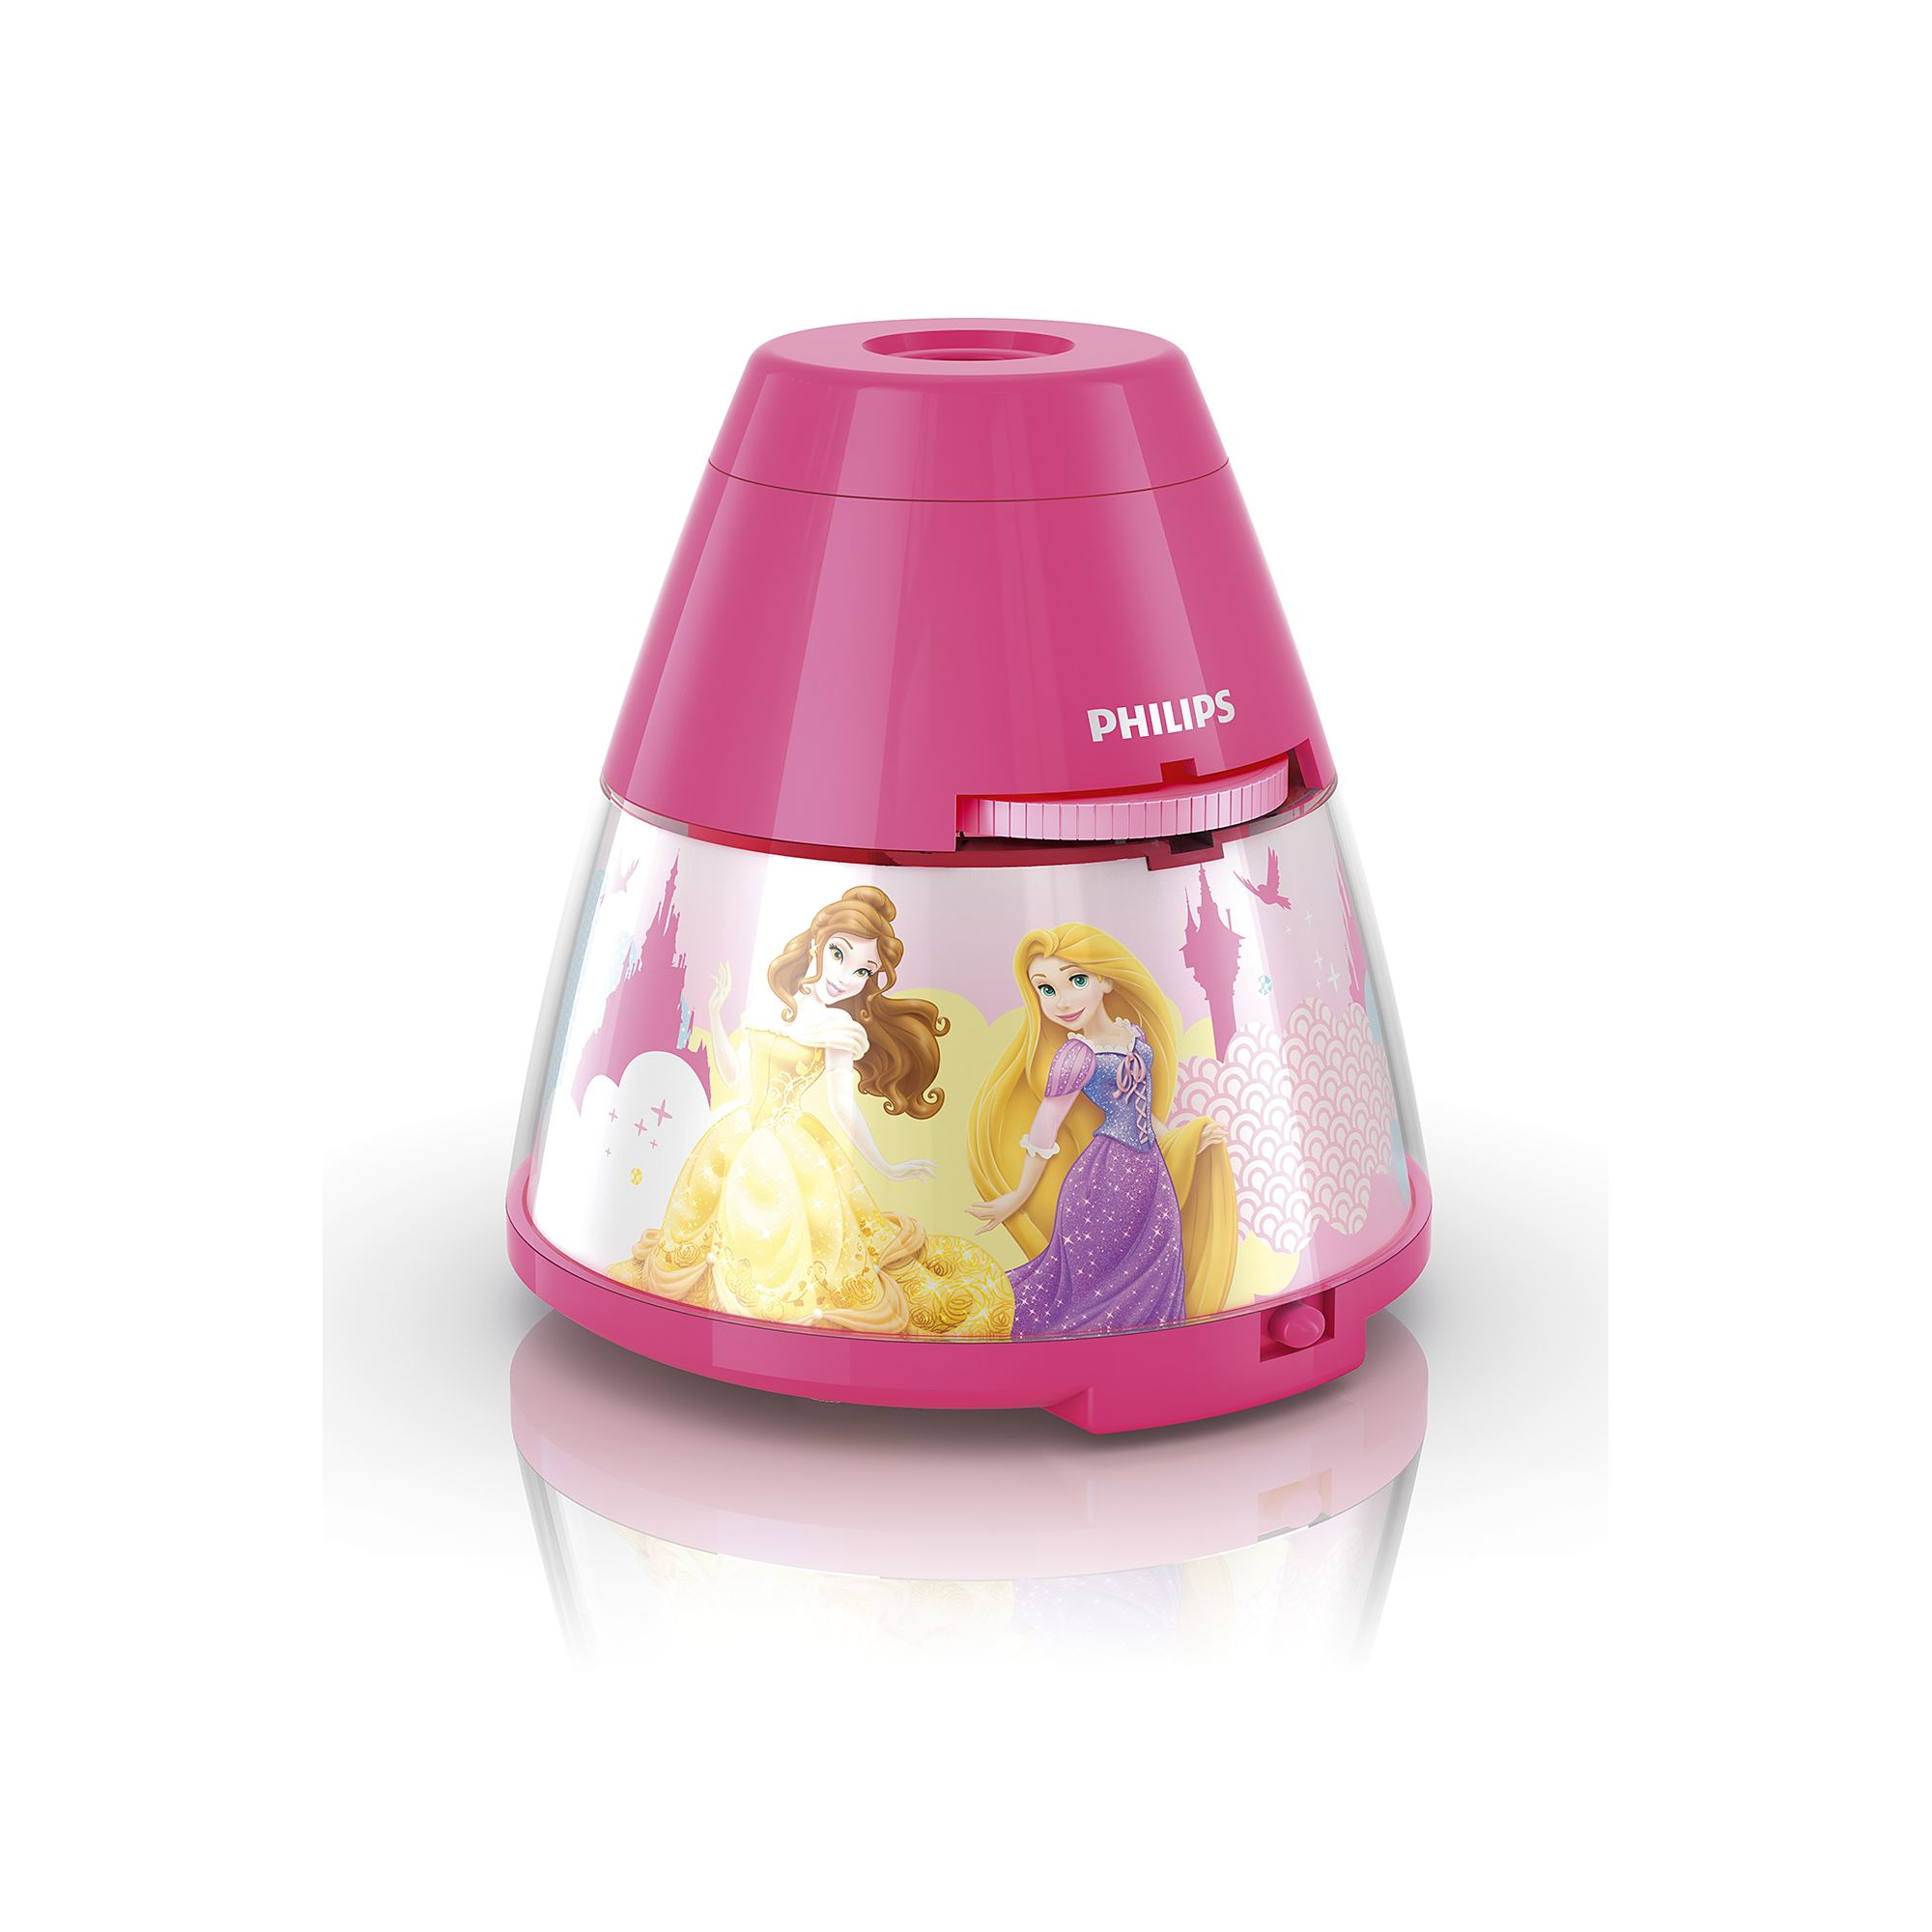 Philips Disney Princess children's LED night light projector portable battery Thumbnail 5